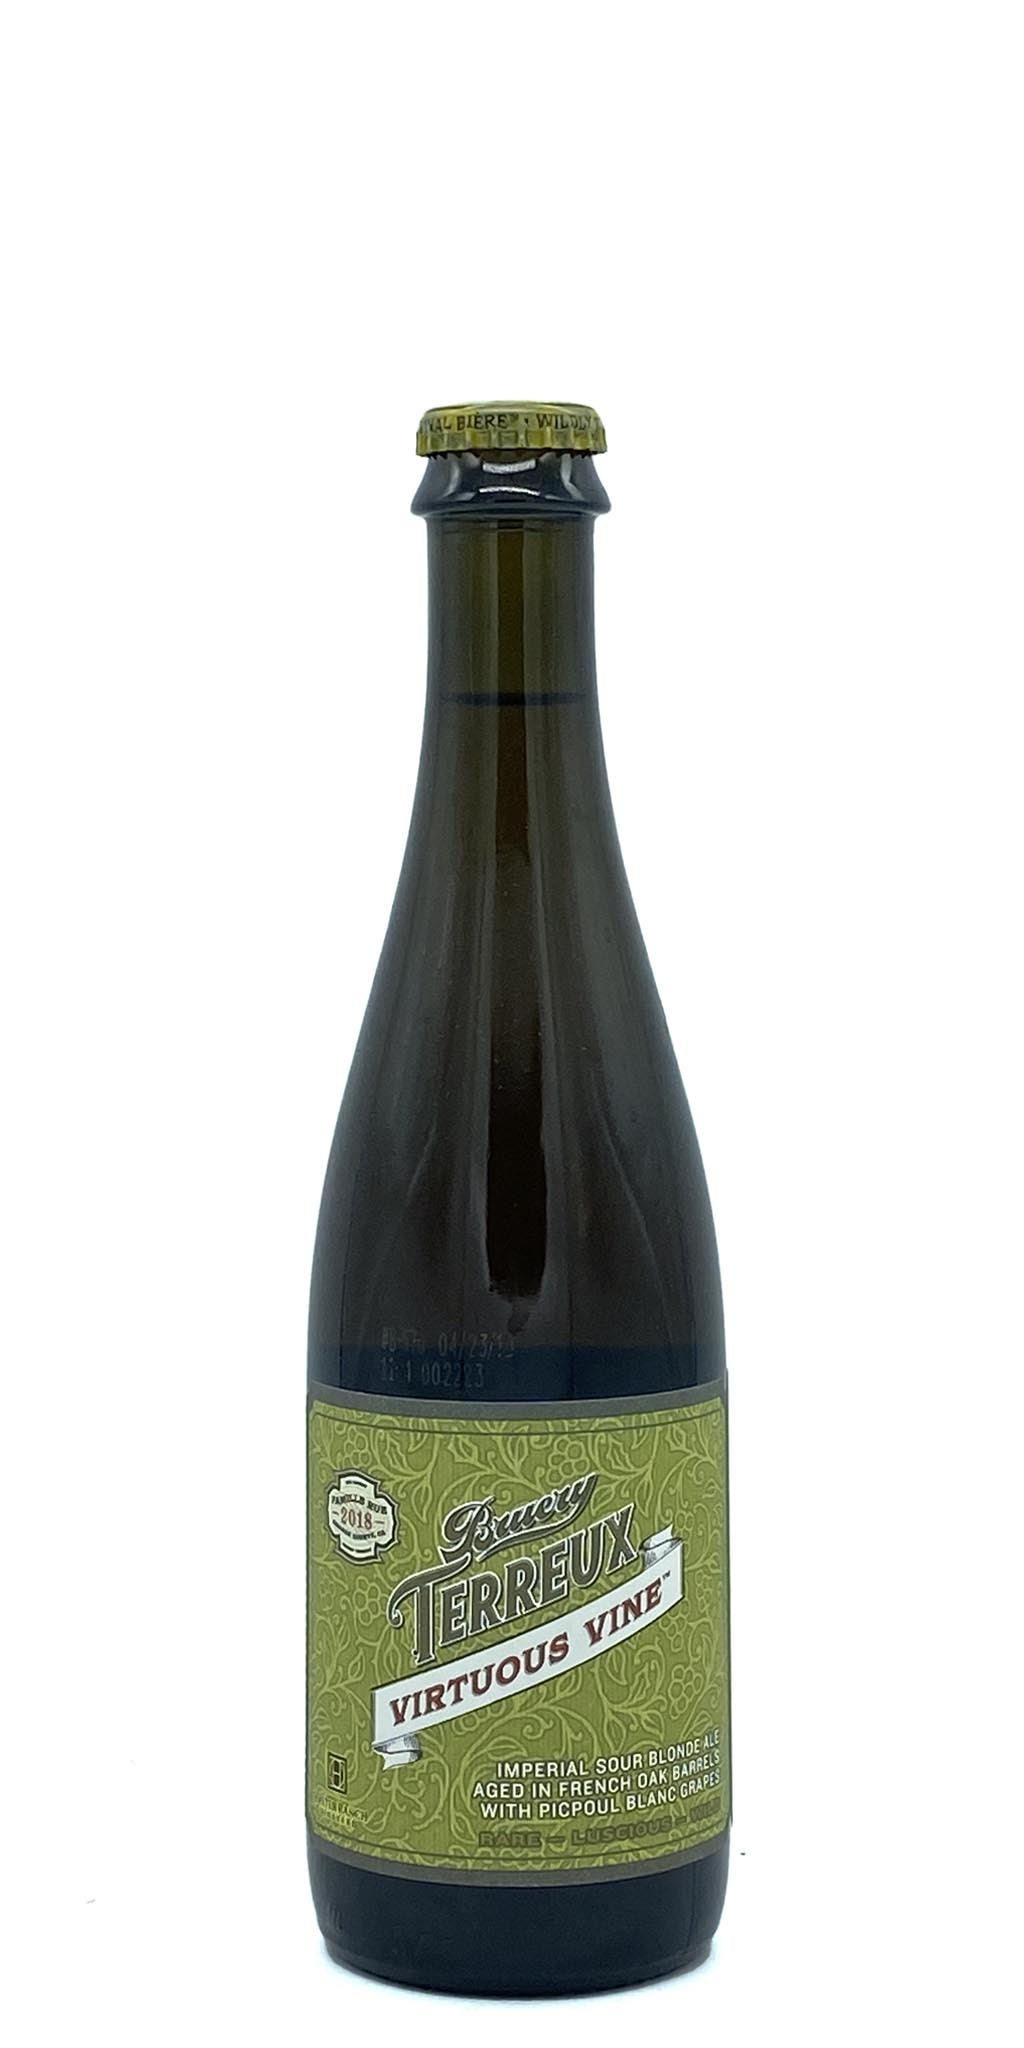 The Bruery - Virtuous Vine 2018